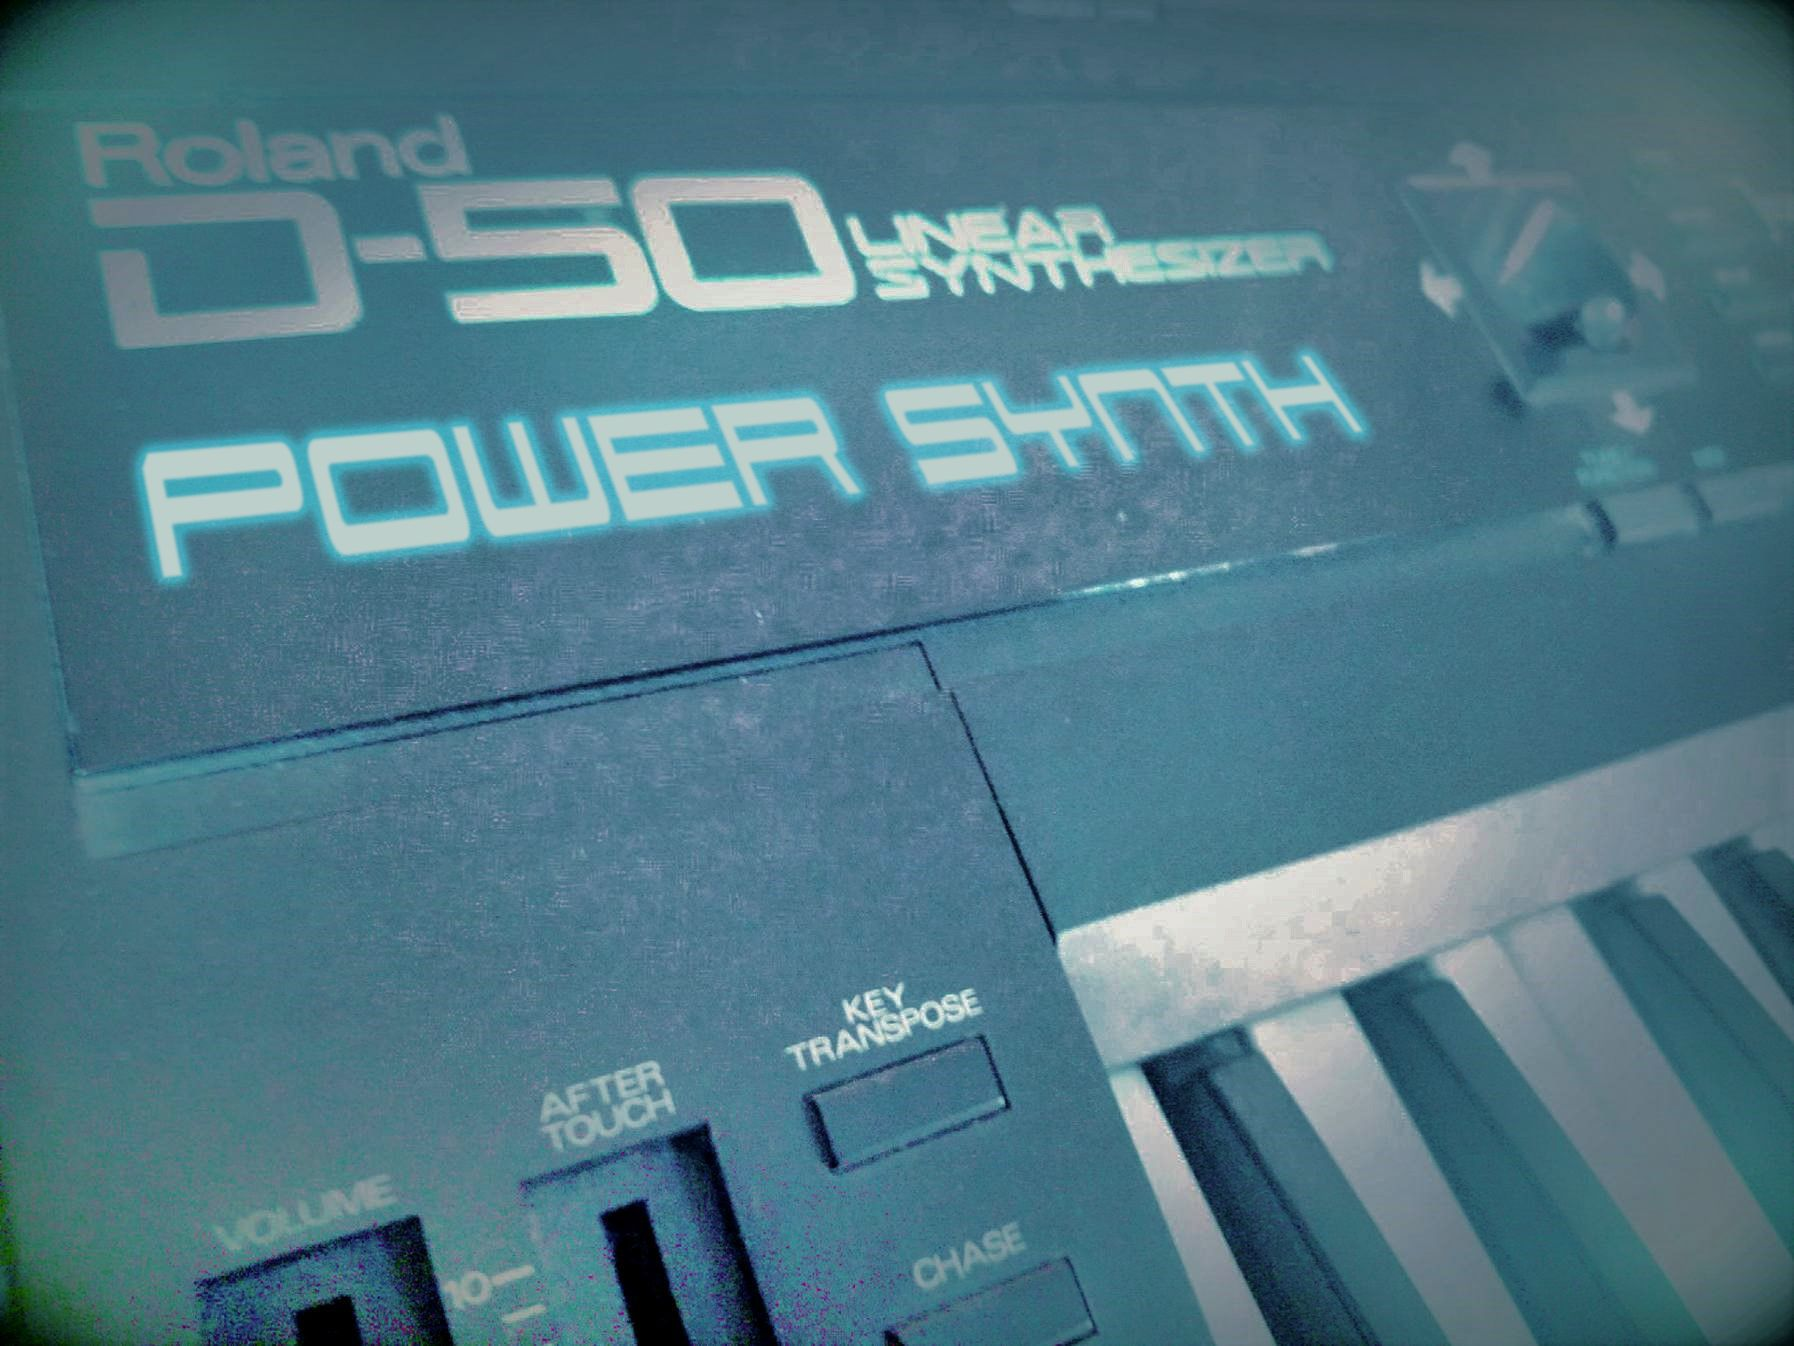 Roland D-50 Power Synth Bank